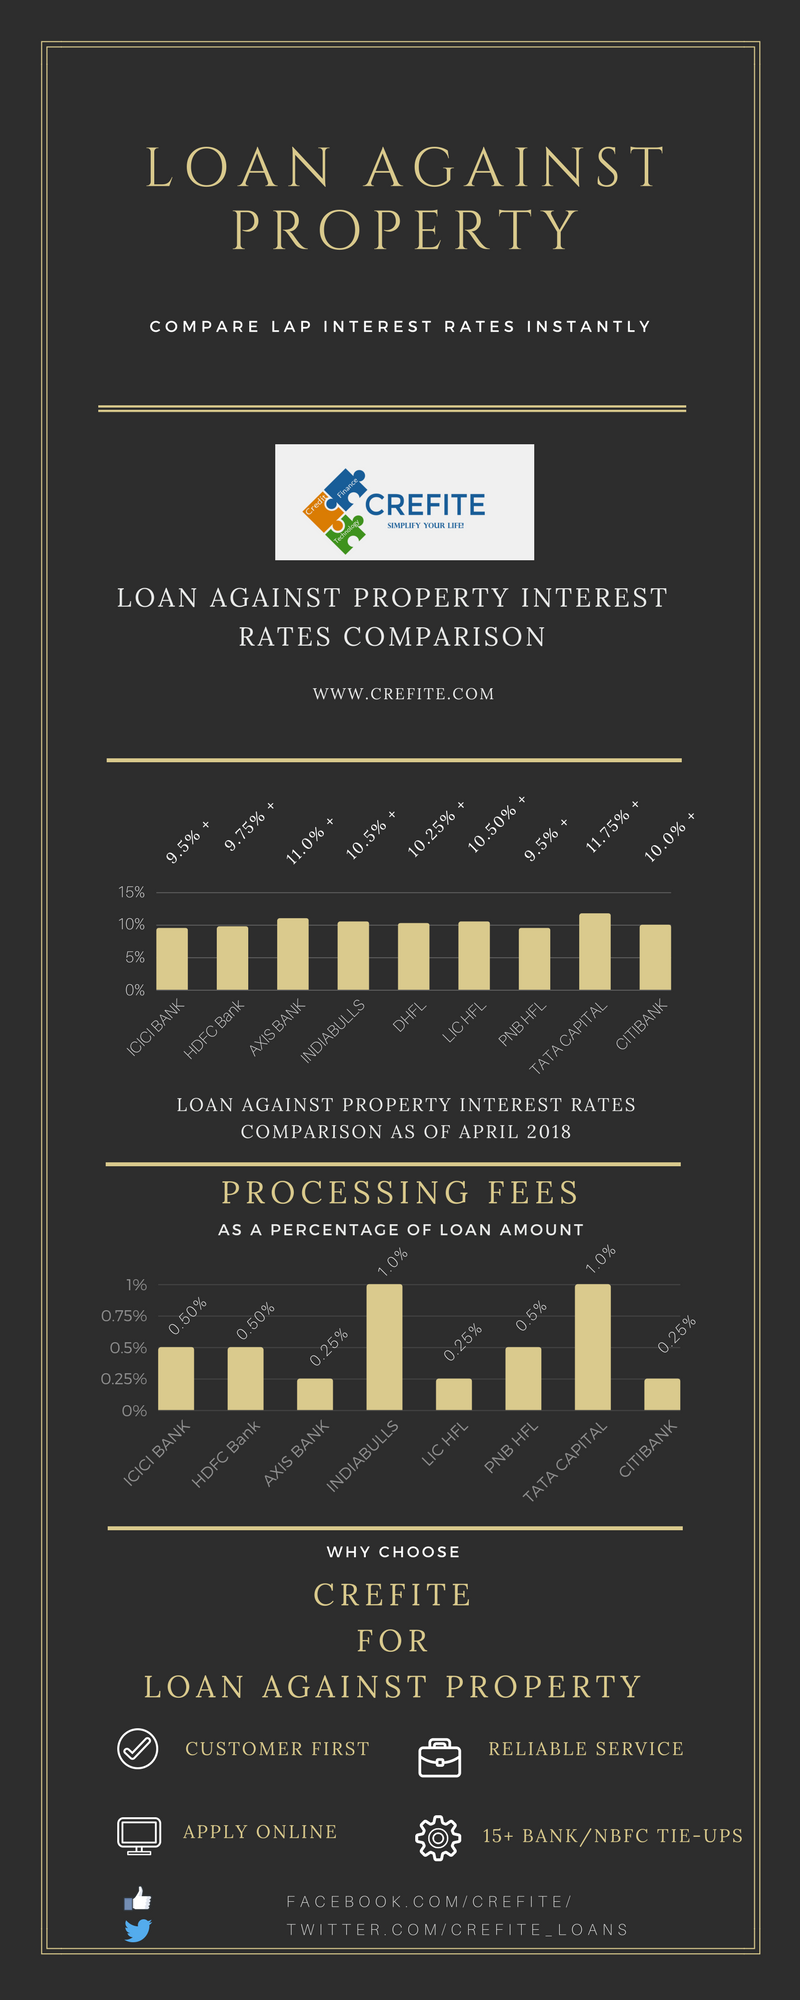 loan against property interest rates comparison - infographic by crefite